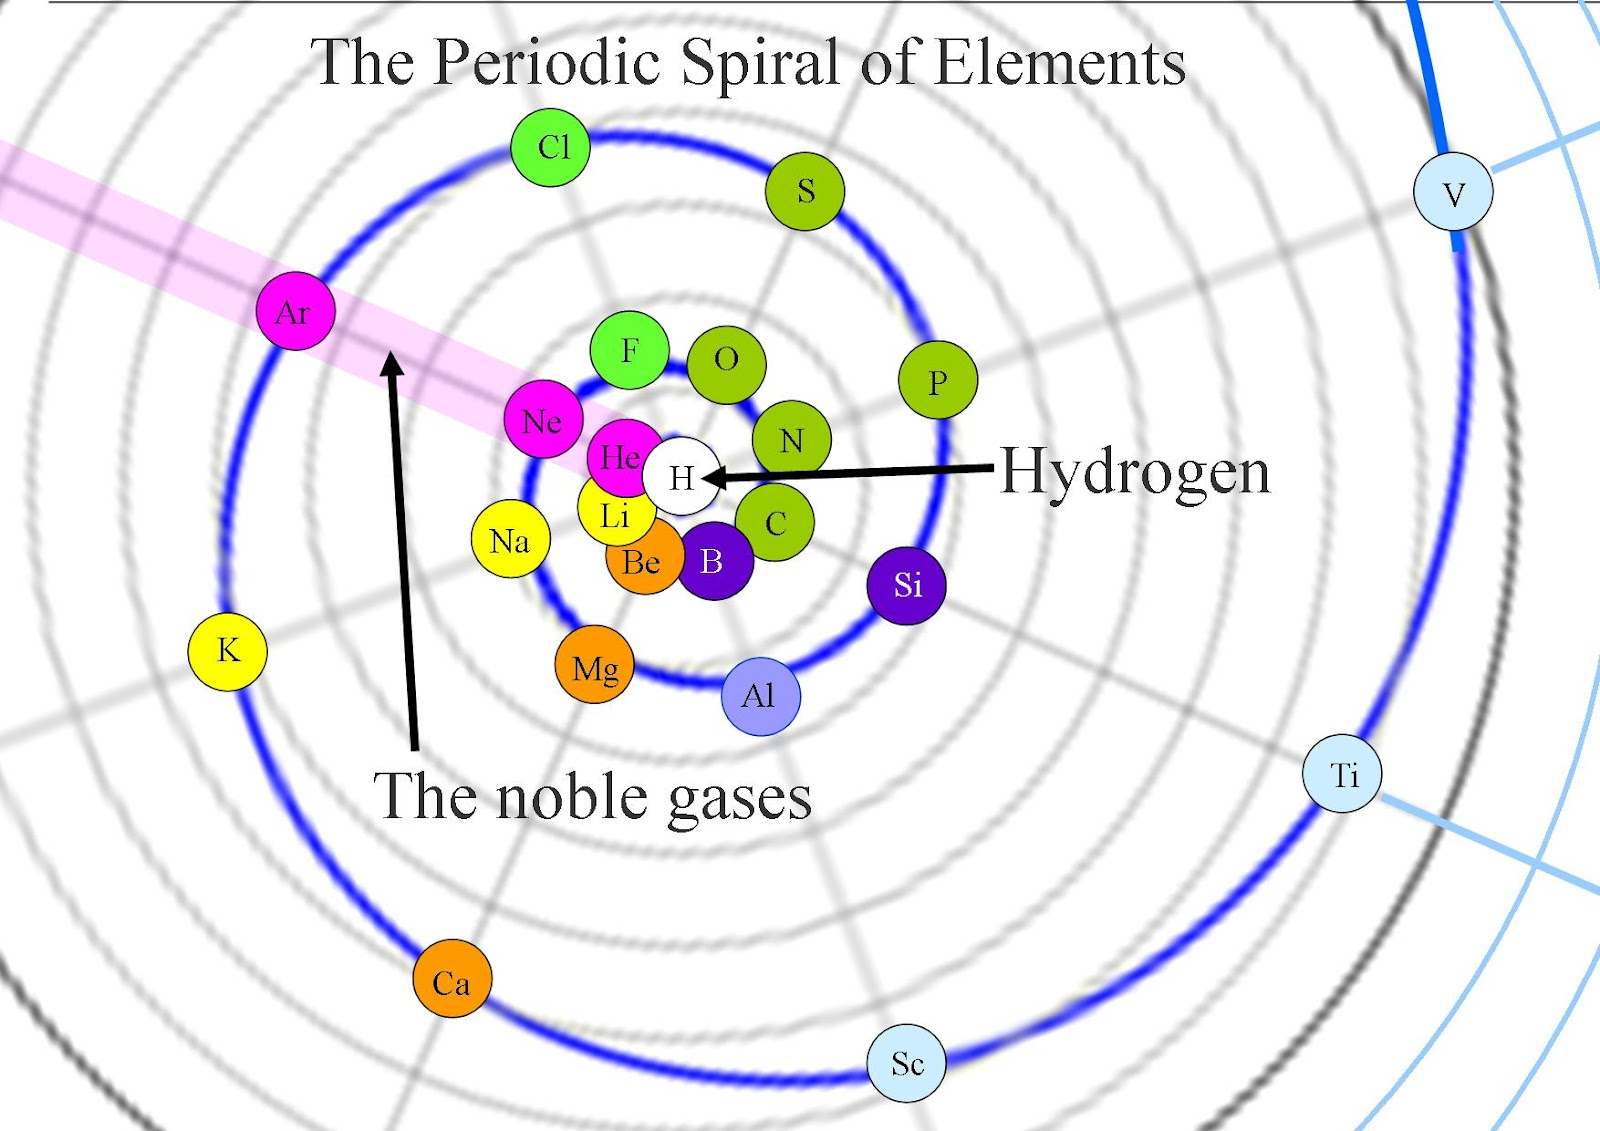 Inert gases on the periodic table image collections periodic quantum art and poetry the periodic spiral of elements an artist the periodic spiral of elements gamestrikefo Choice Image